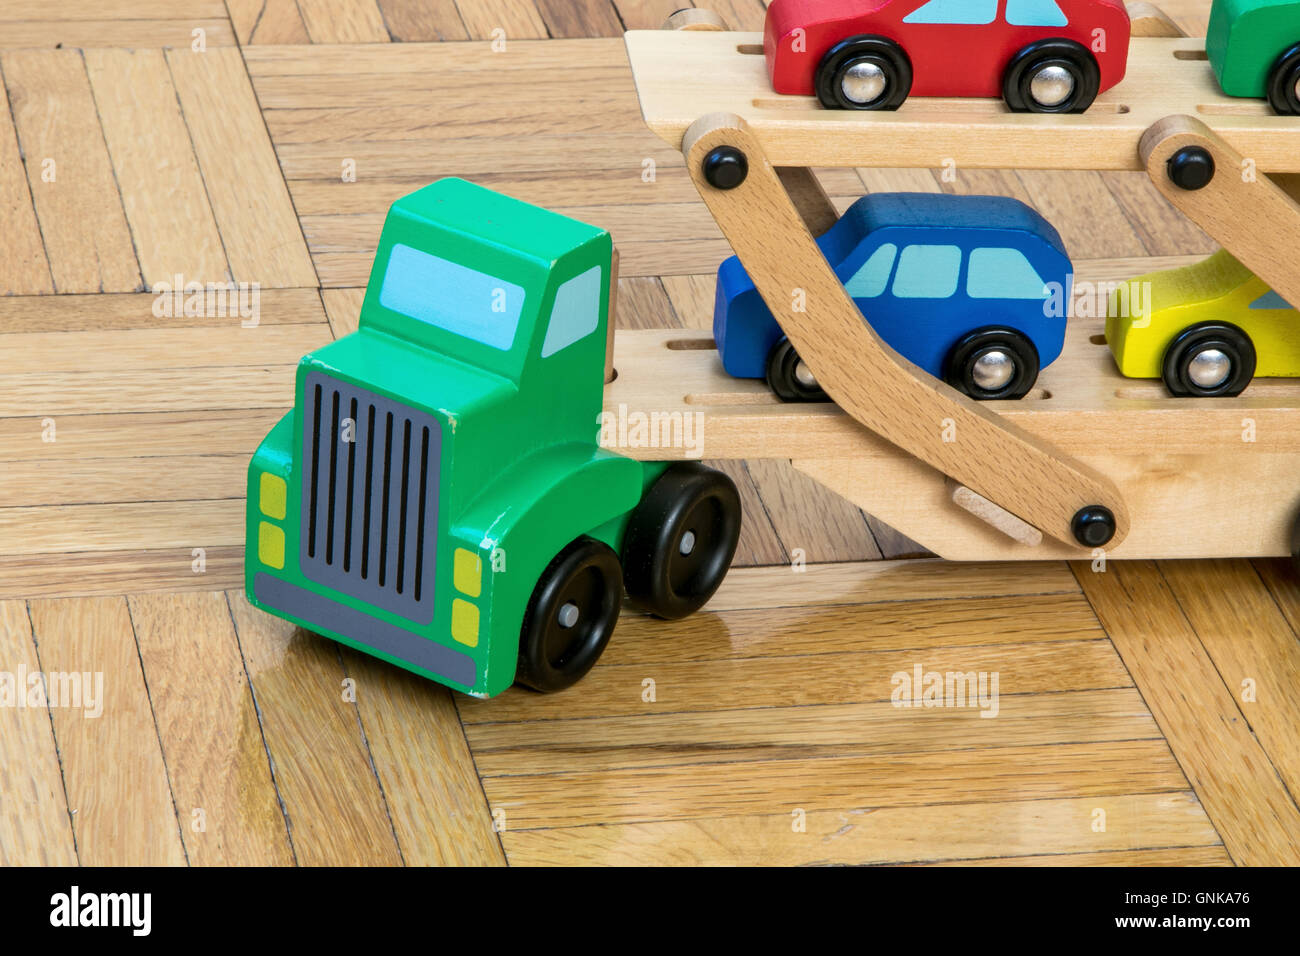 A toy truck carrying toy cars Stock Photo